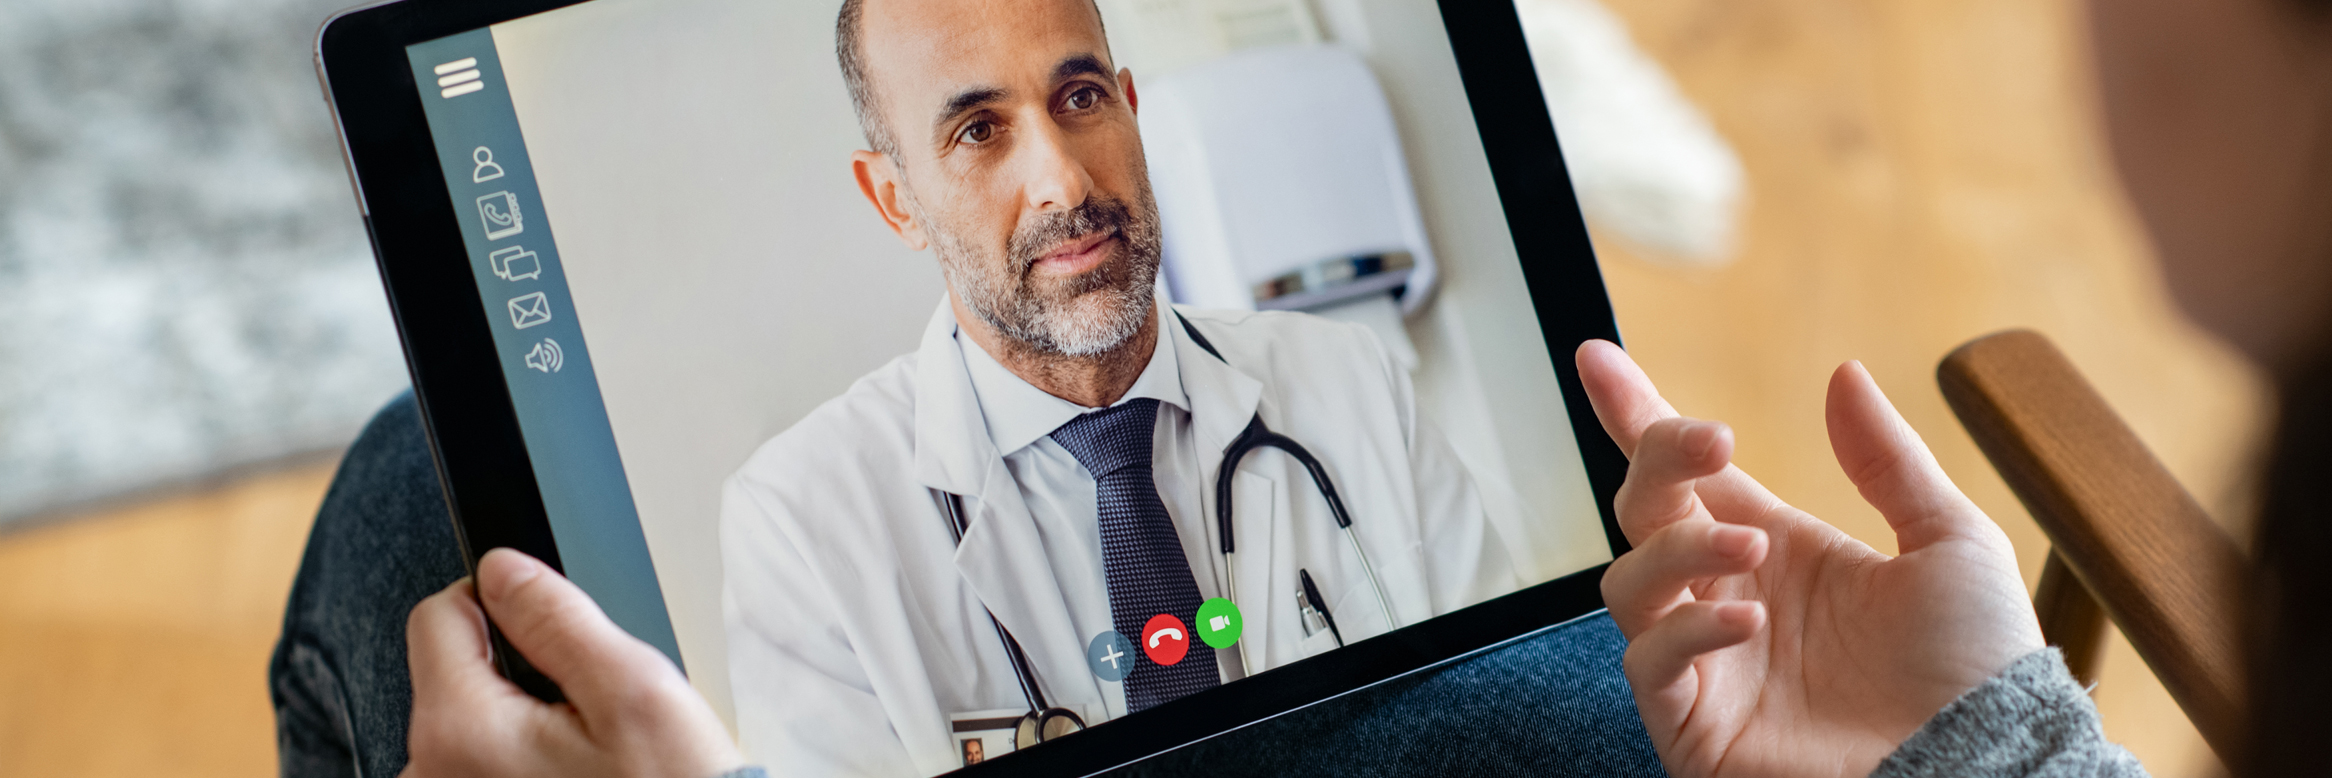 6 Tips for Improving Your Telehealth Webside Manner